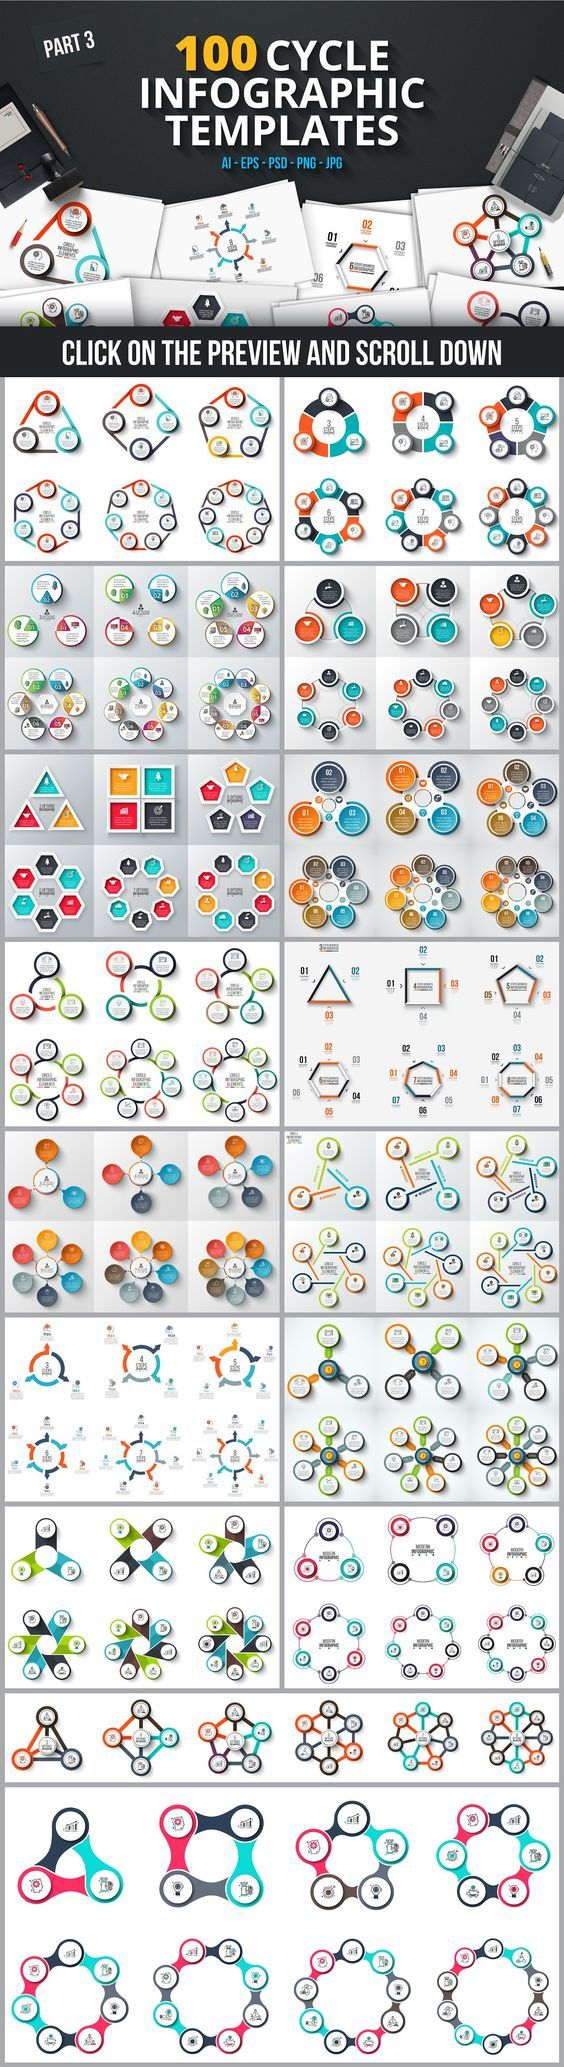 infographic templates bundle graphic design pinterest